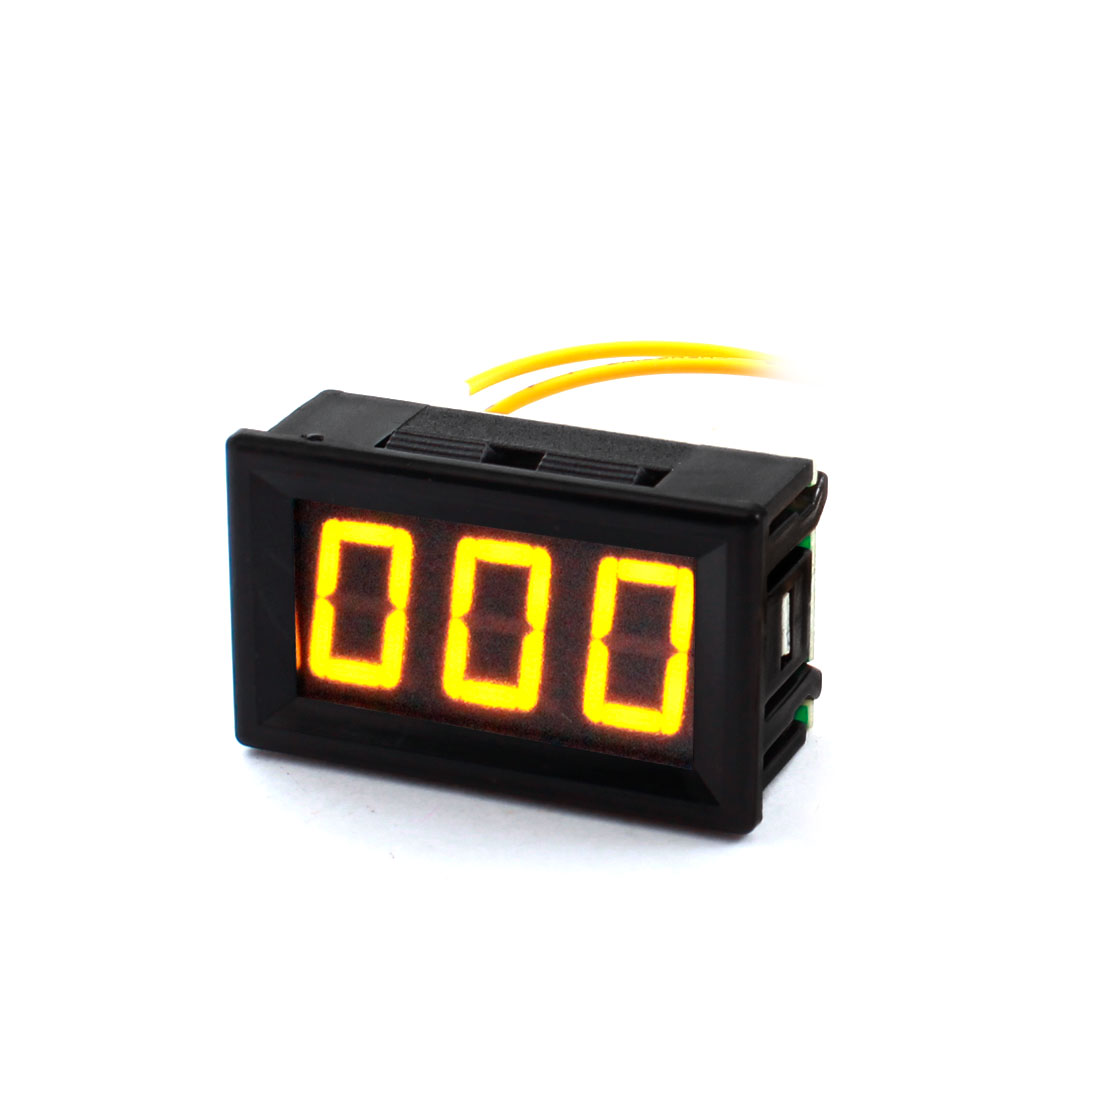 AC12V-380V 19mm Wire Leads Panel Mount 7 Segment Yellow Digits 3-Bits LED Digital Display Voltmeter Voltage Meter